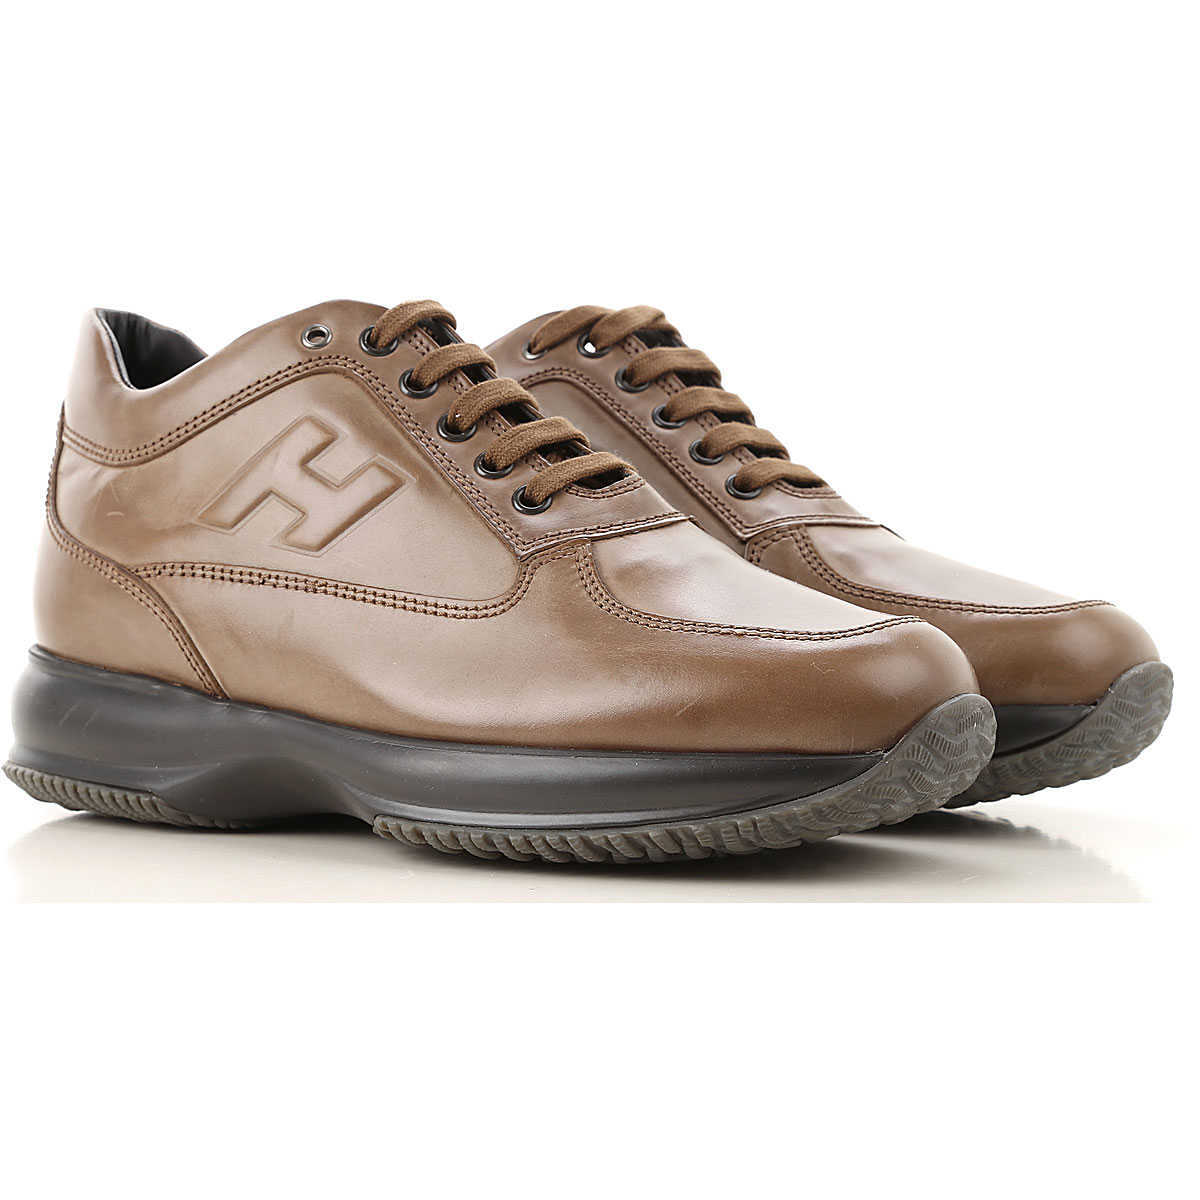 Hogan Sneakers for Men On Sale Tobacco - GOOFASH